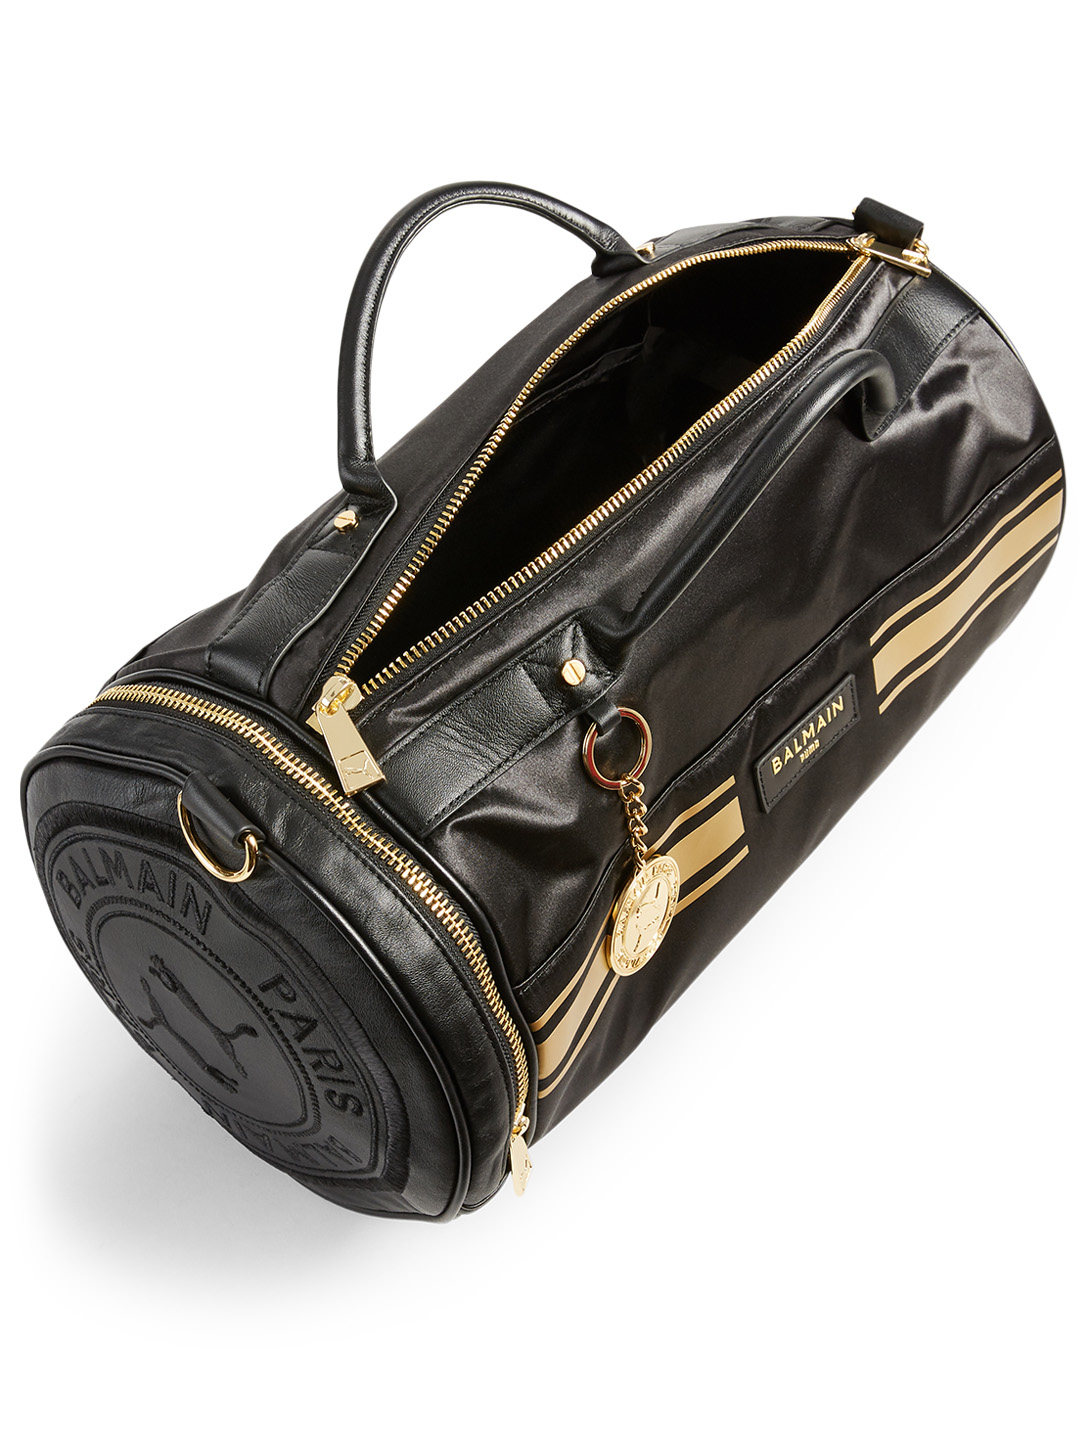 PUMA X BALMAIN Barrel Bag Women's Black